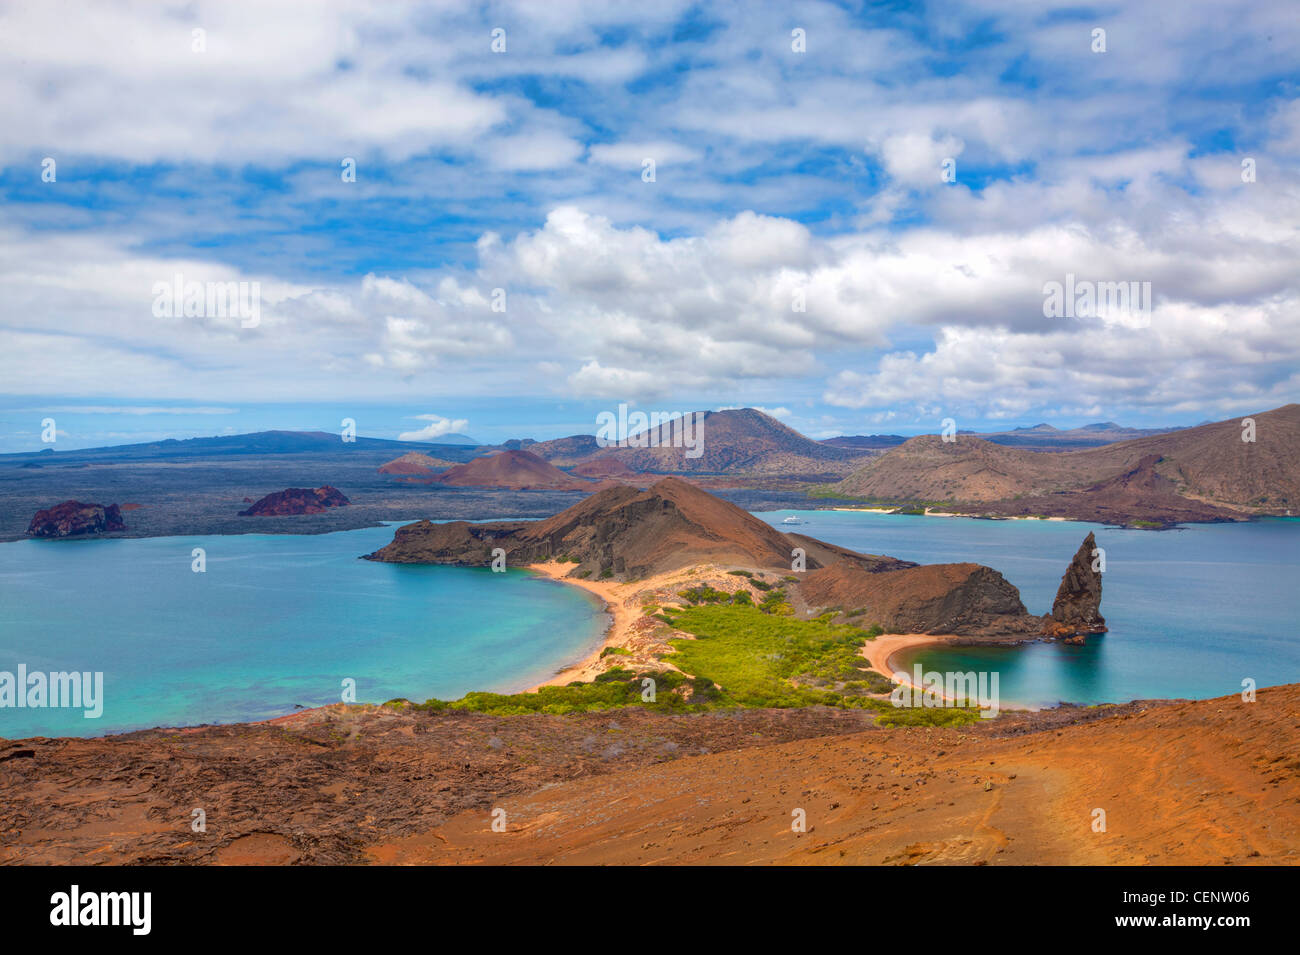 View of the pinnacle on Bartolome, Galapagos - Stock Image